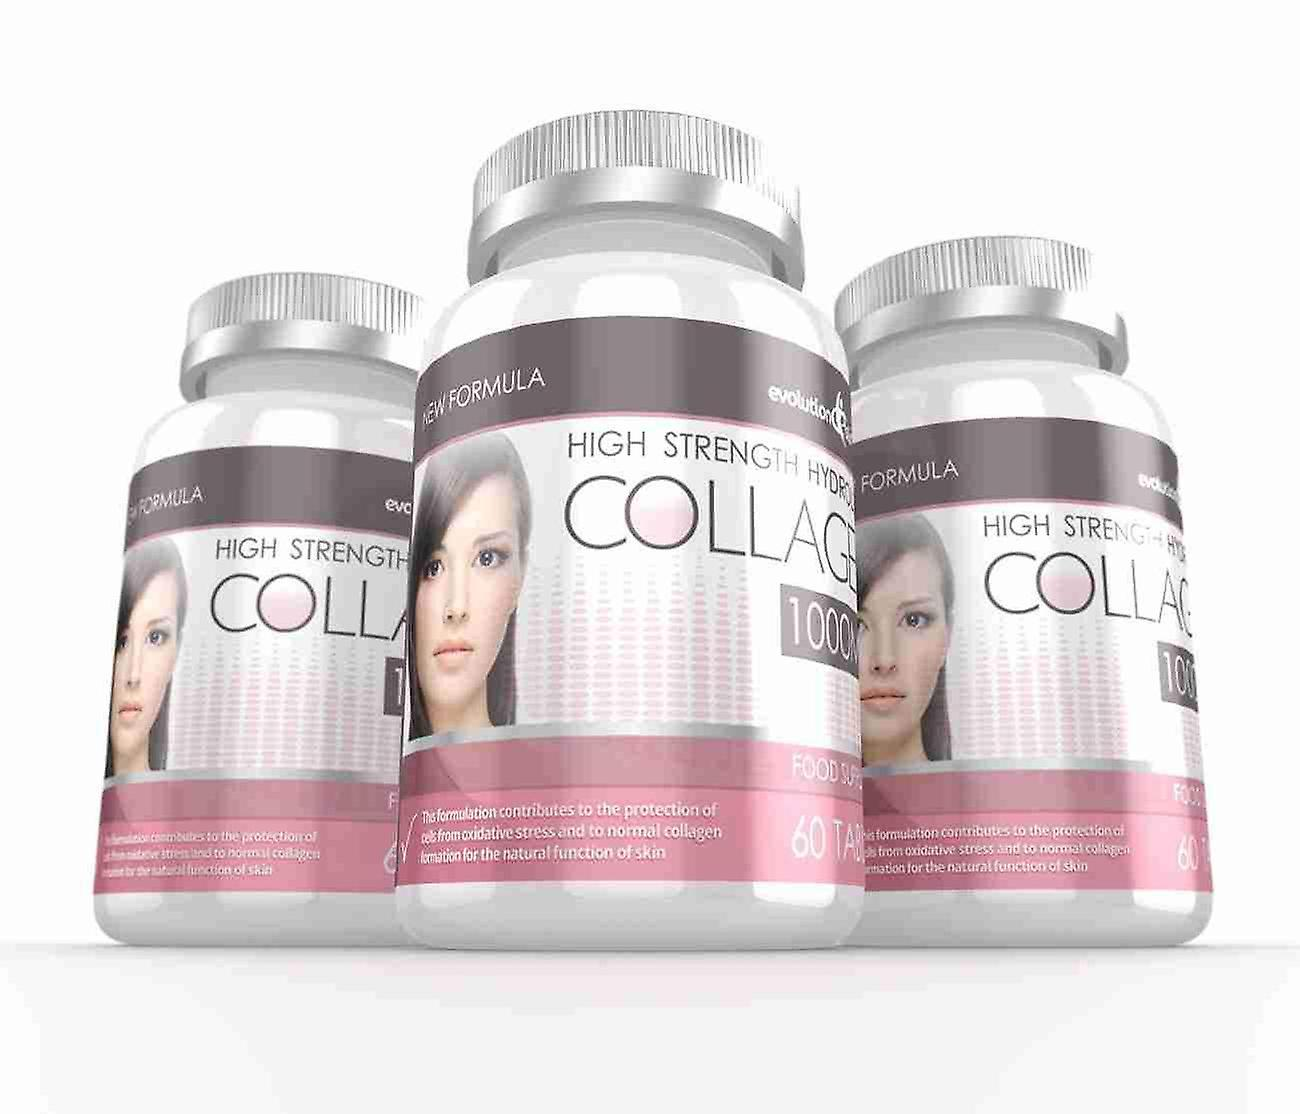 Hydrolysed Collagen High Strength 1,000mg for Hair, Skin and Nails + Vitamin C - 180 Tablets - Skin and Joint Health - Evolution Slimming